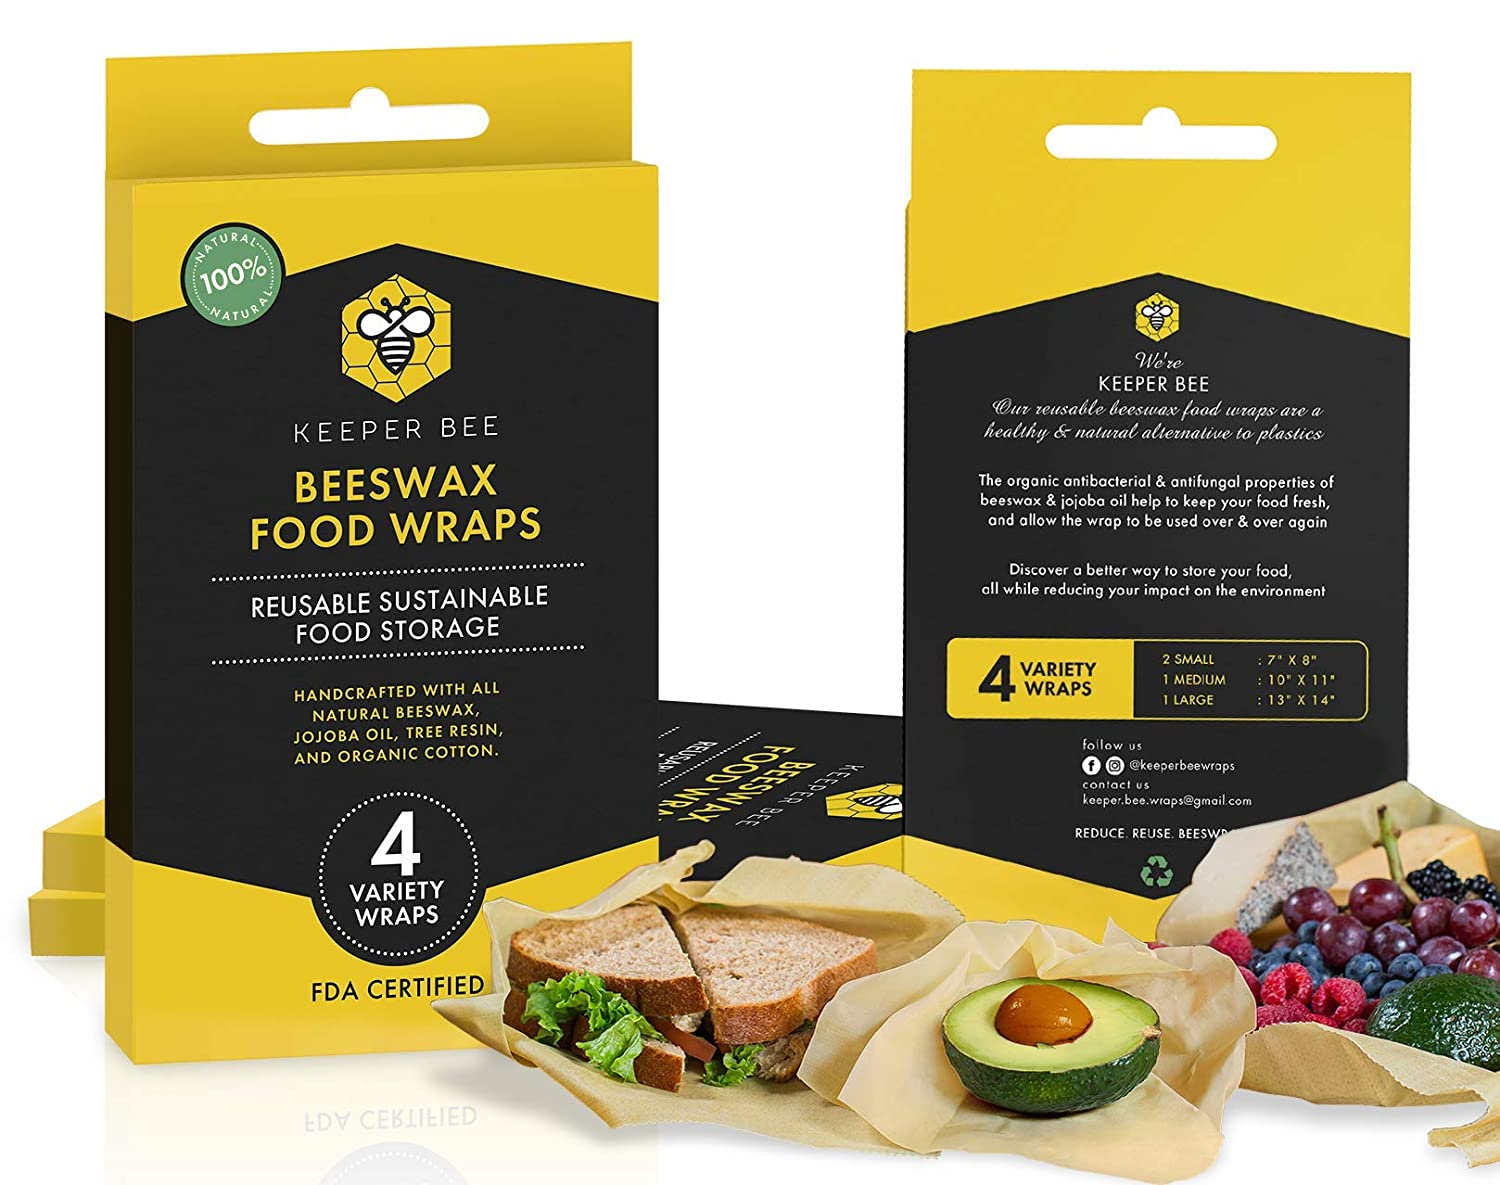 Beeswax Food Wraps 4 Pack, by Keeper Bee ~ All Natural, Organic & Sustainable Food Storage ~ Eco Friendly & Reusable Alternative to Plastic ~ (2 Small, 1 Medium, 1 Large) ~ Dye Free!